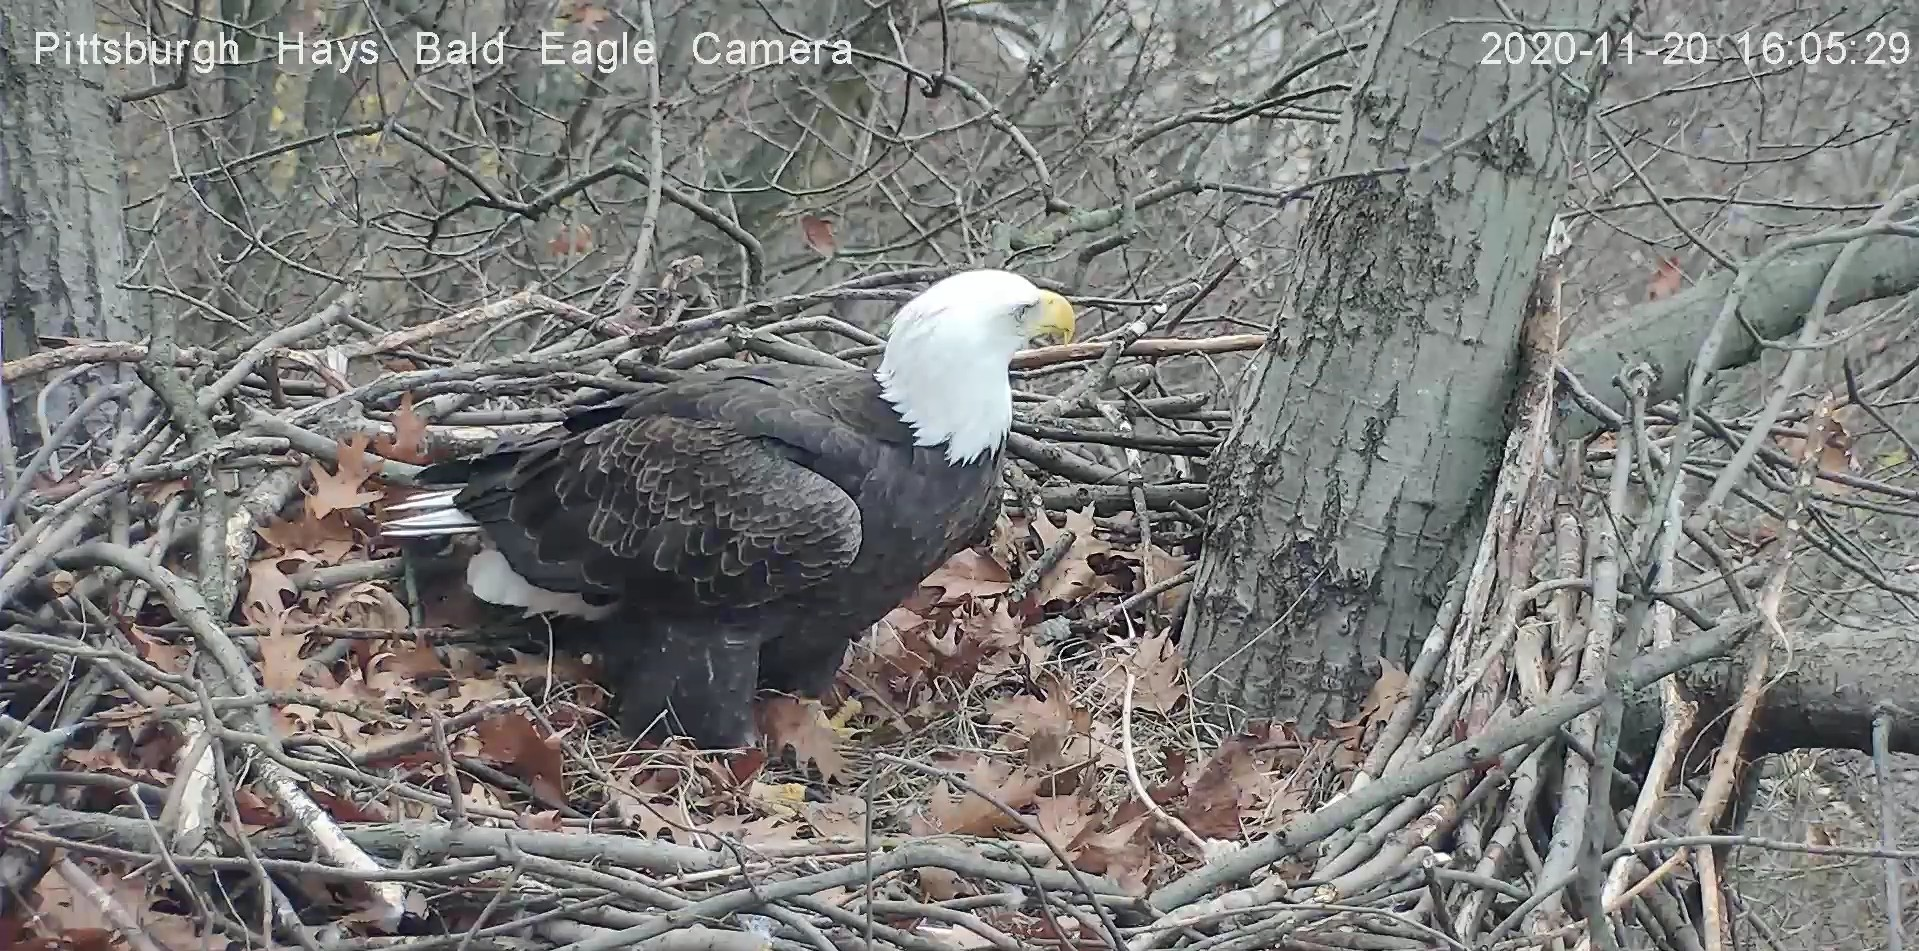 Hays Bald Eagle Camera